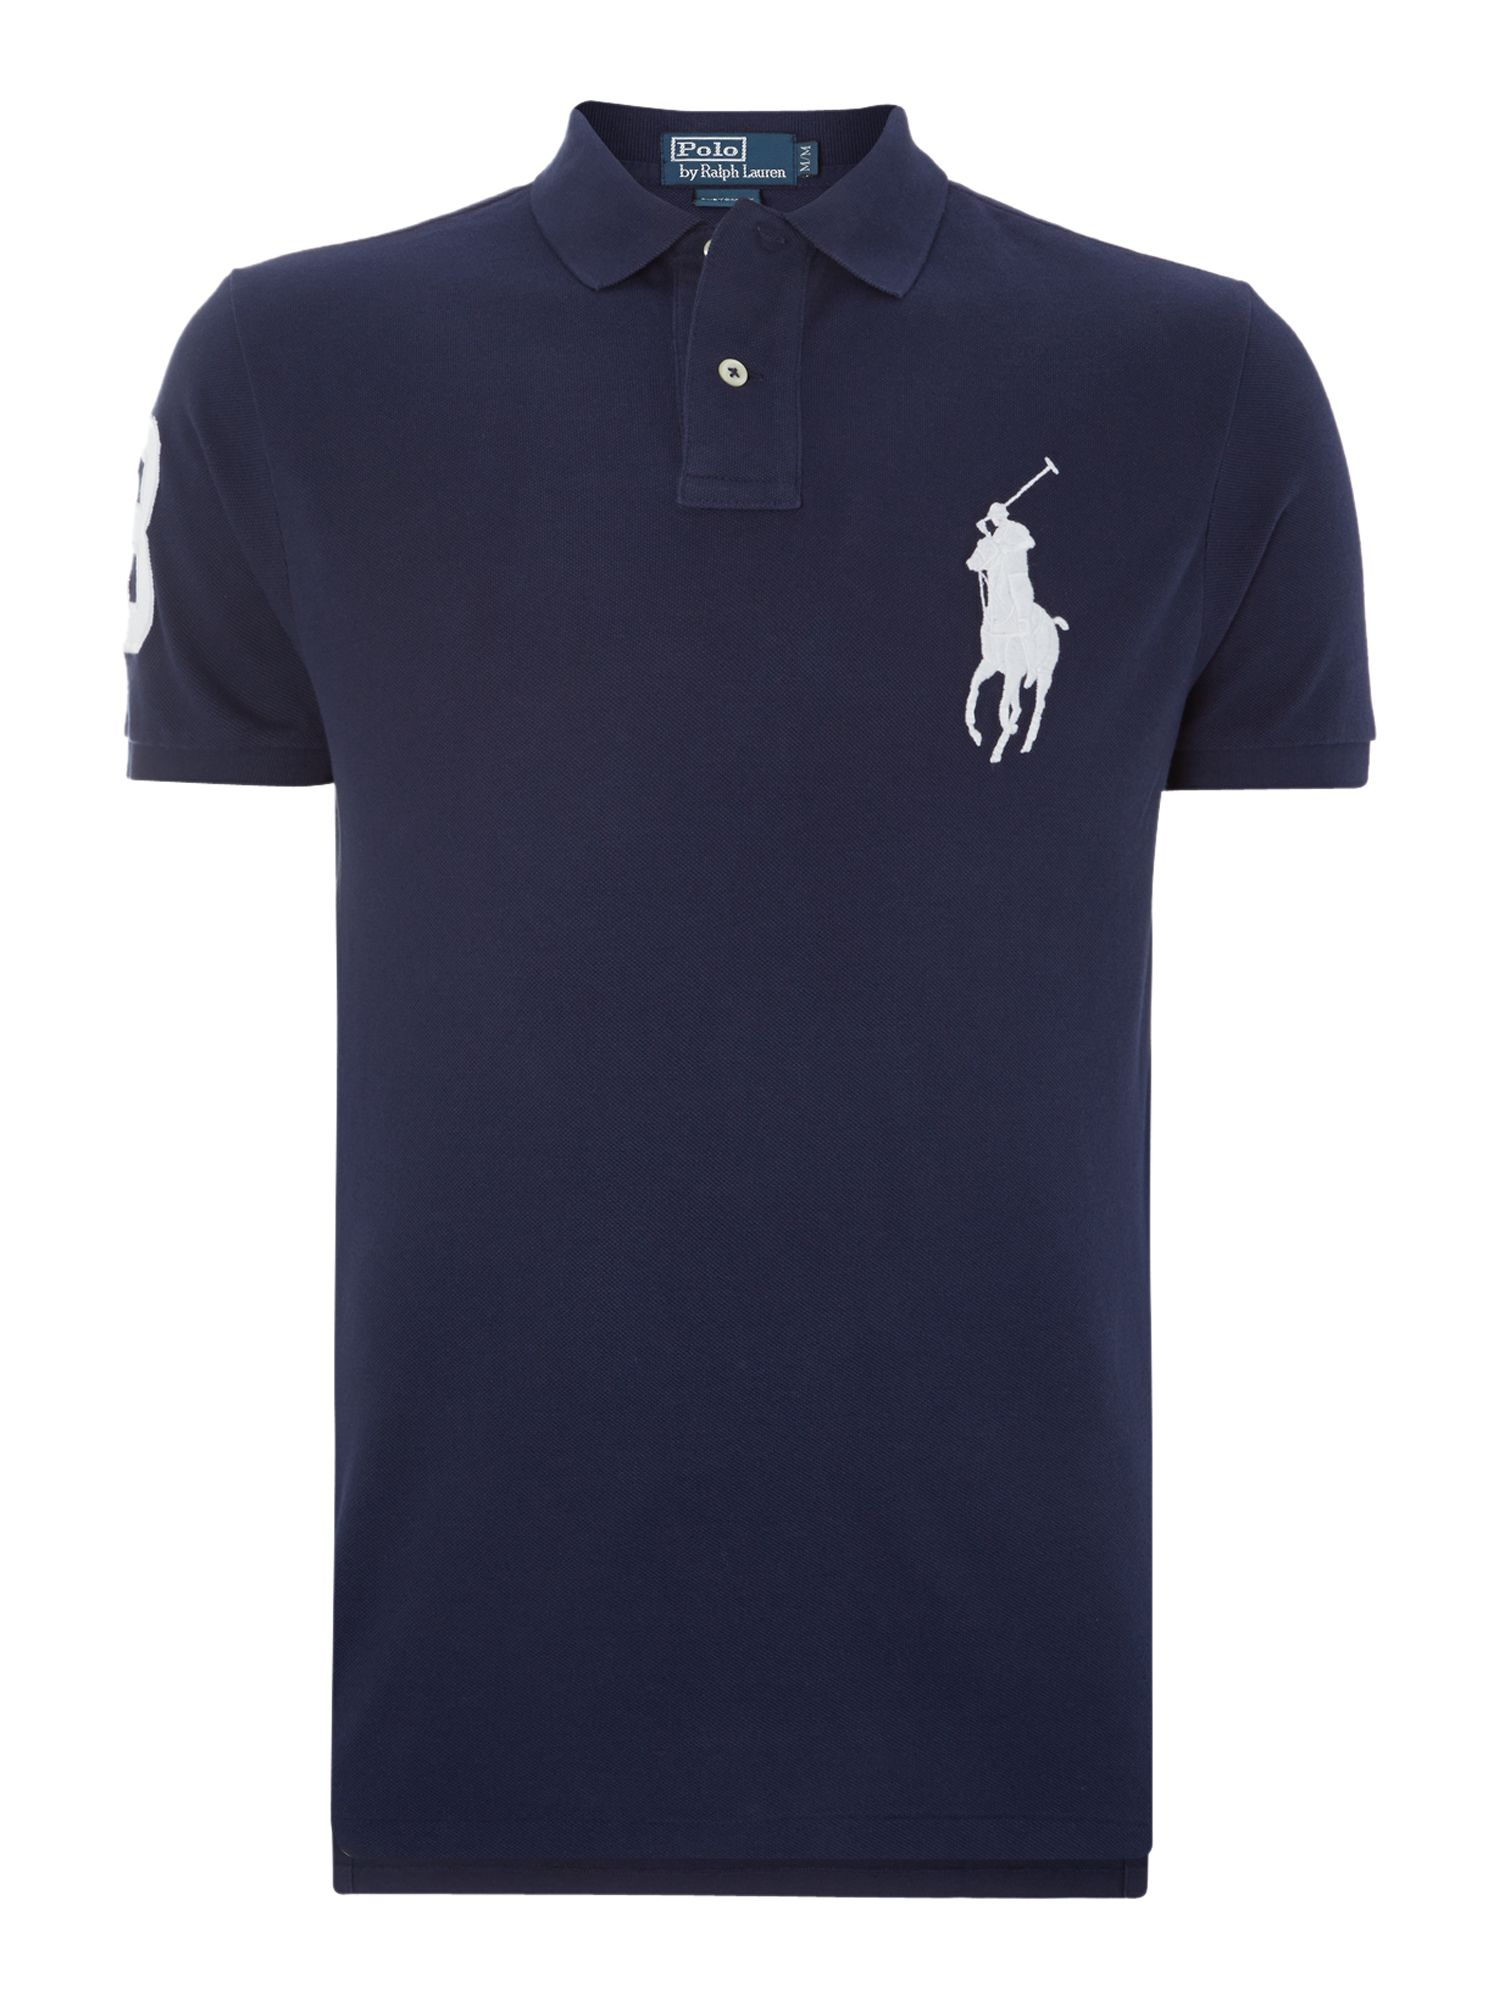 Ralph Lauren Shirts Without Logos